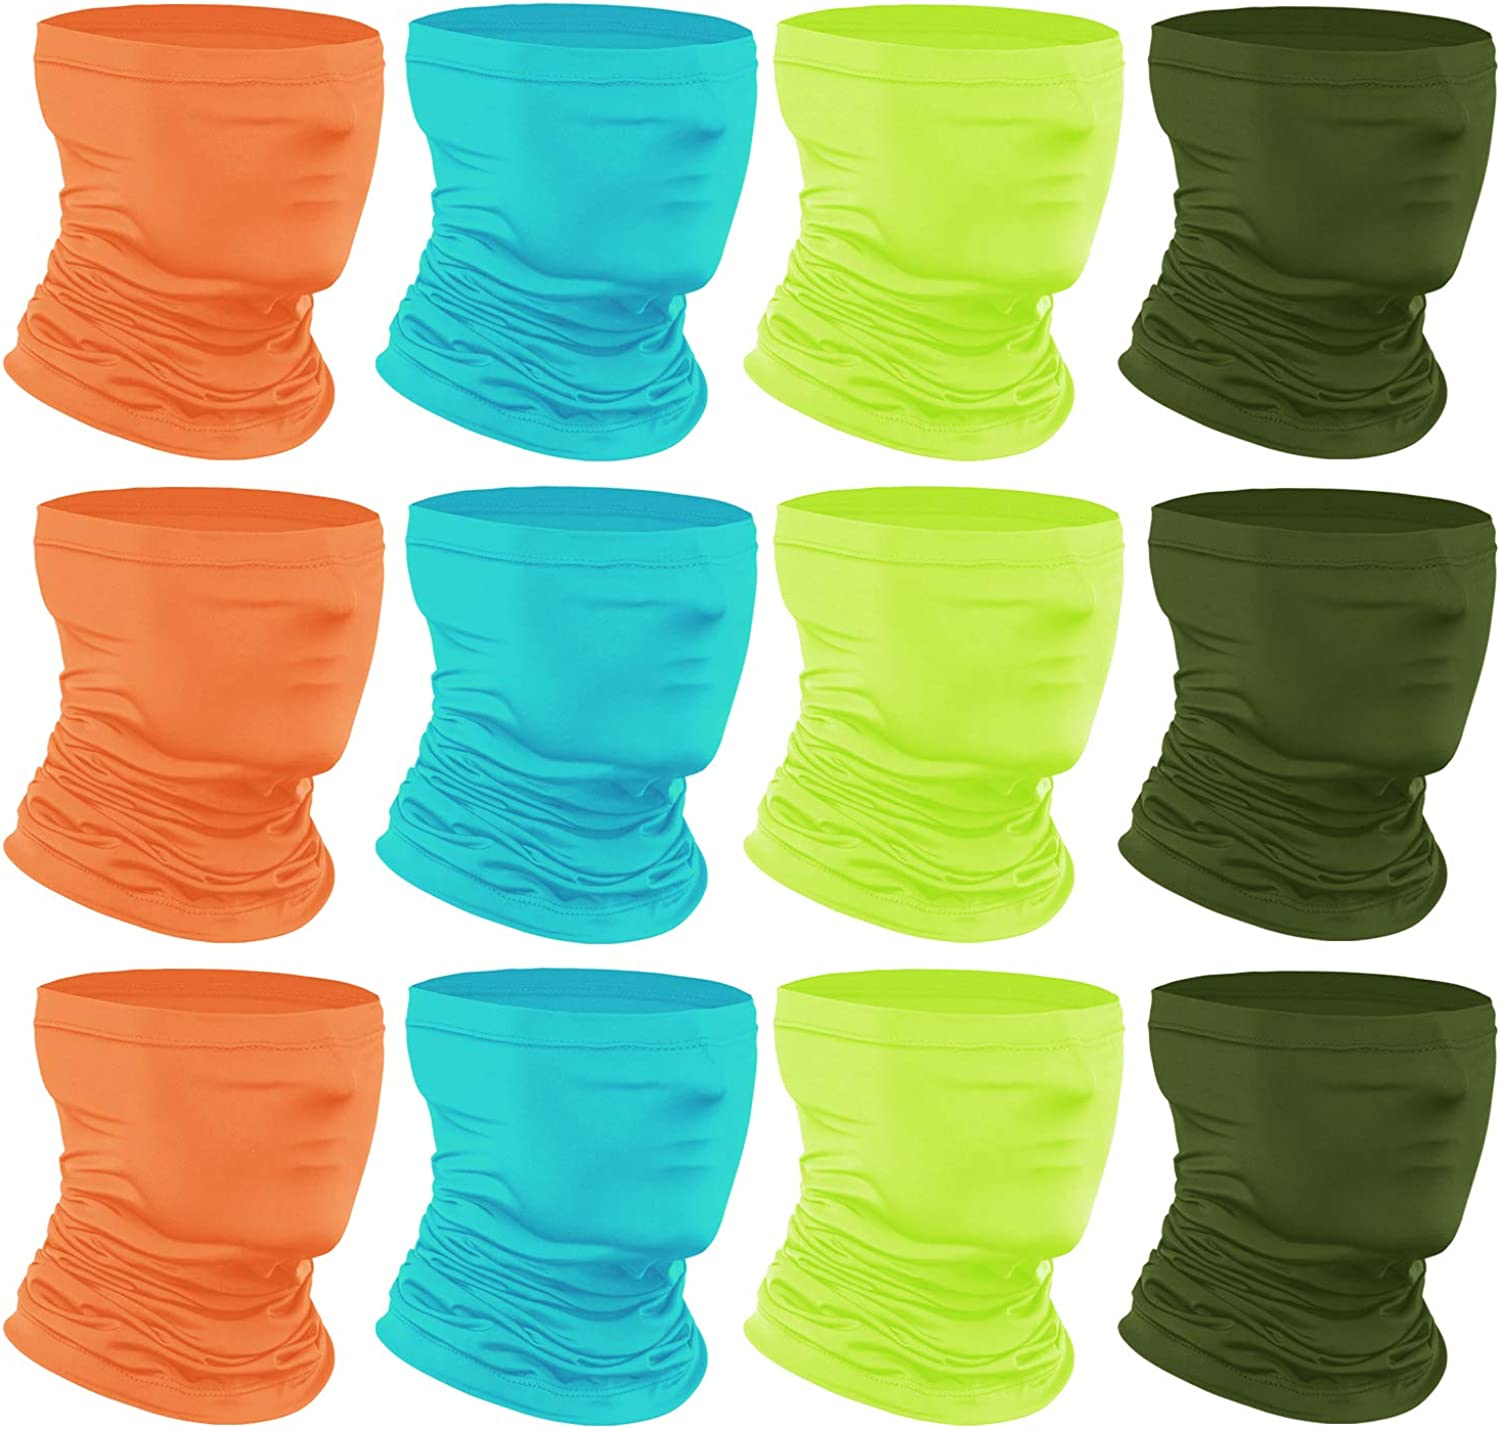 6-14 Years Kids Cooling Neck Gaiter Scarf 12-Pack Breathable Bandana Face Bandana Cover for Boys Girls Anstronic